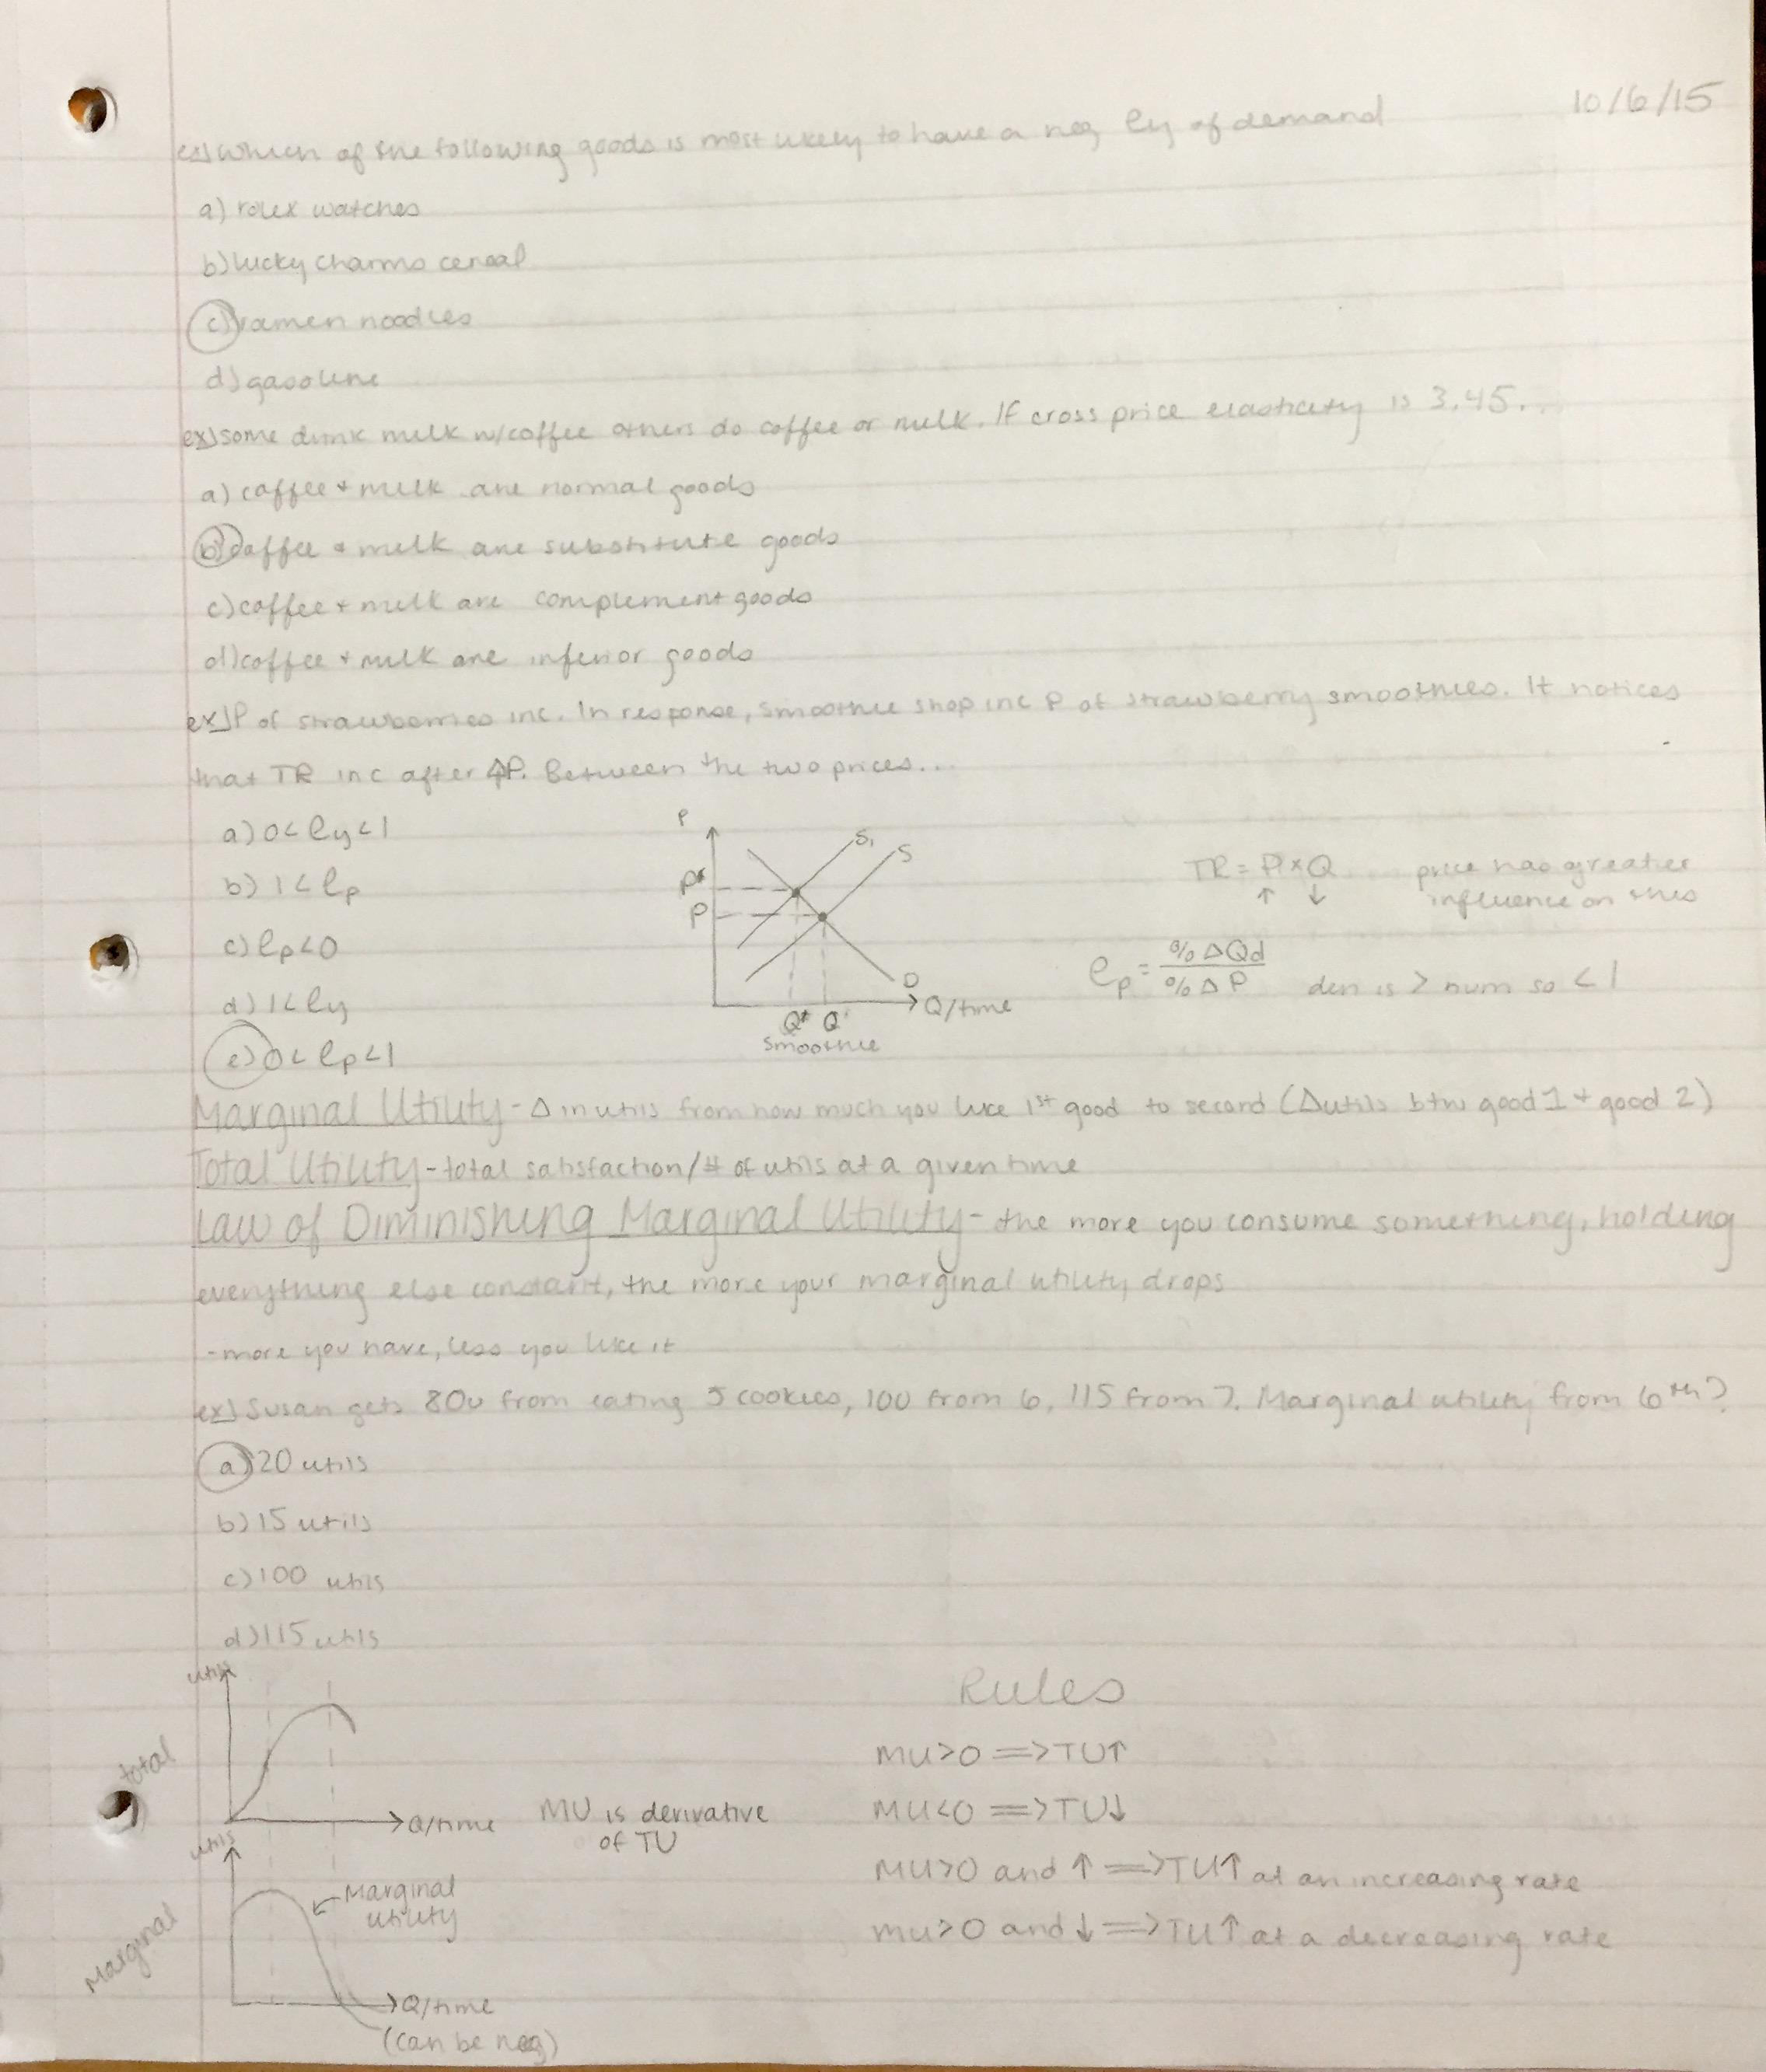 ECON 1010 - Class Notes - Week 8